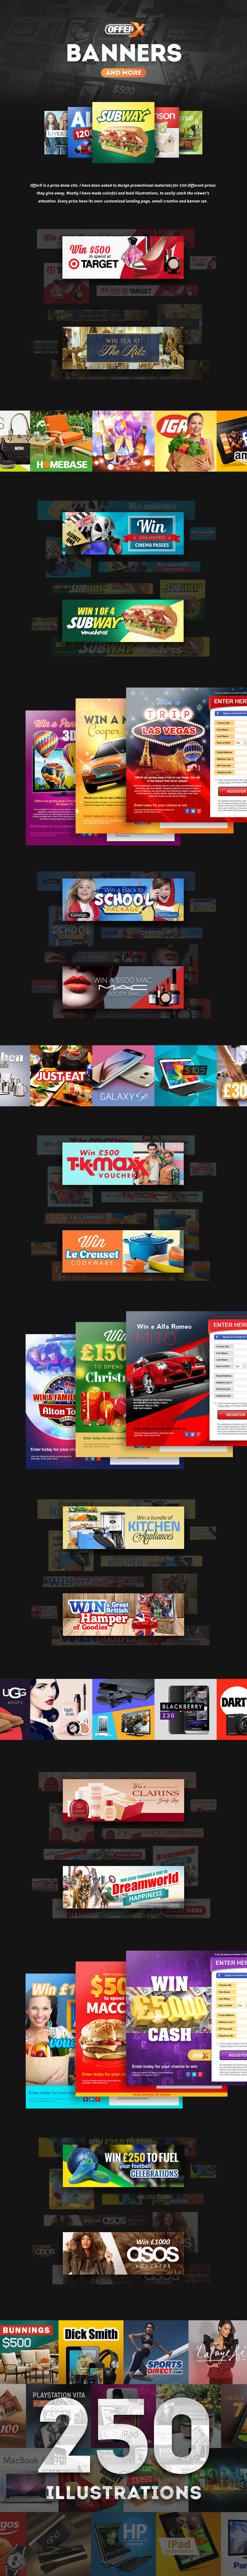 Offer-X Banner Advertisements by Finsweet